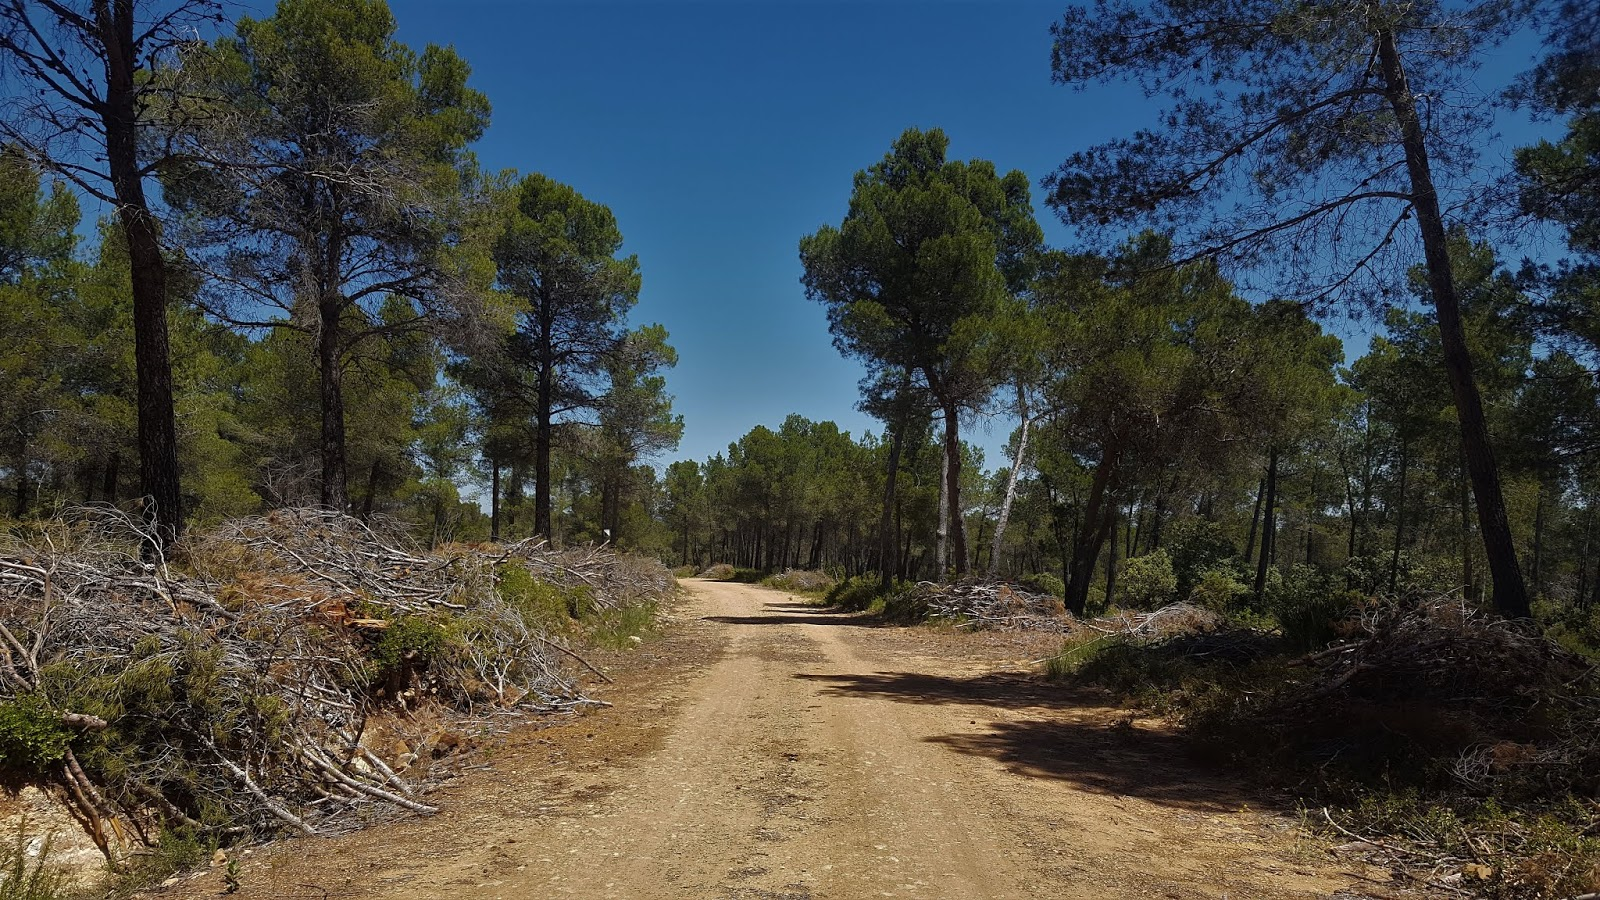 Forest track from Casas de Benalí to Navarrés, Valencia, Spain